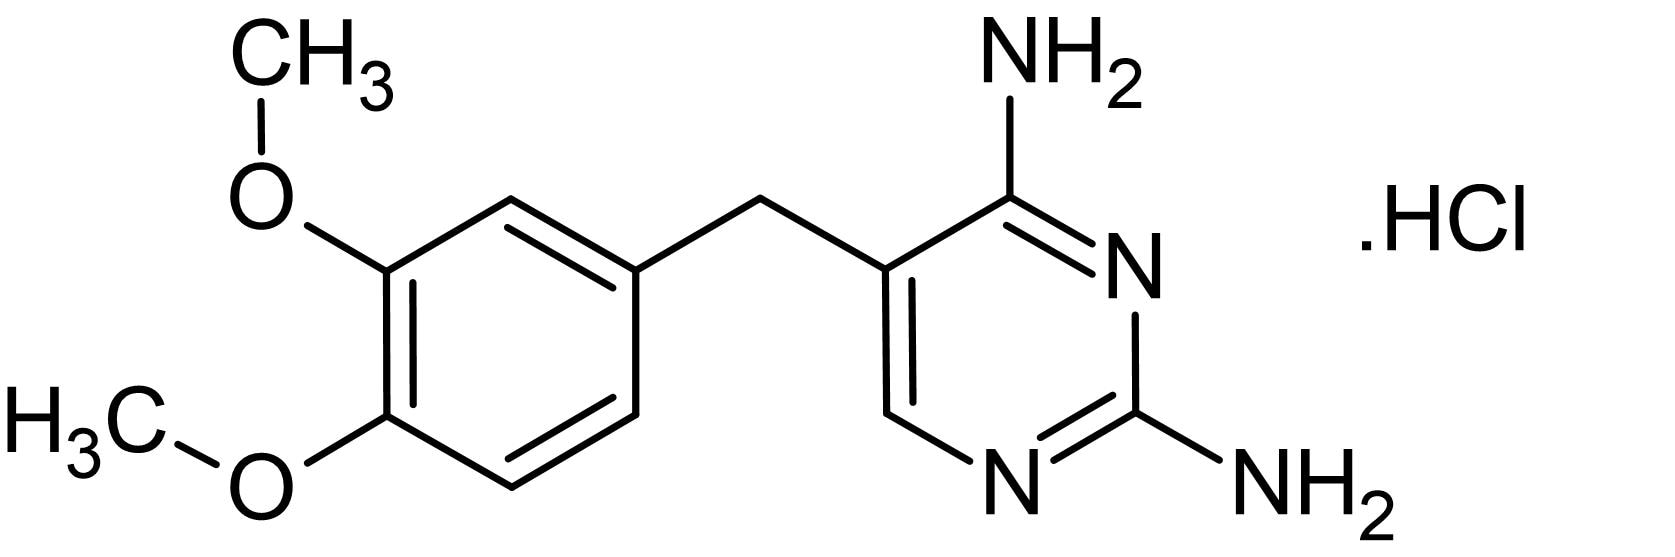 Chemical Structure - Diaveridine hydrochloride, Coccidiostat and DHFR inhibitor (ab142286)